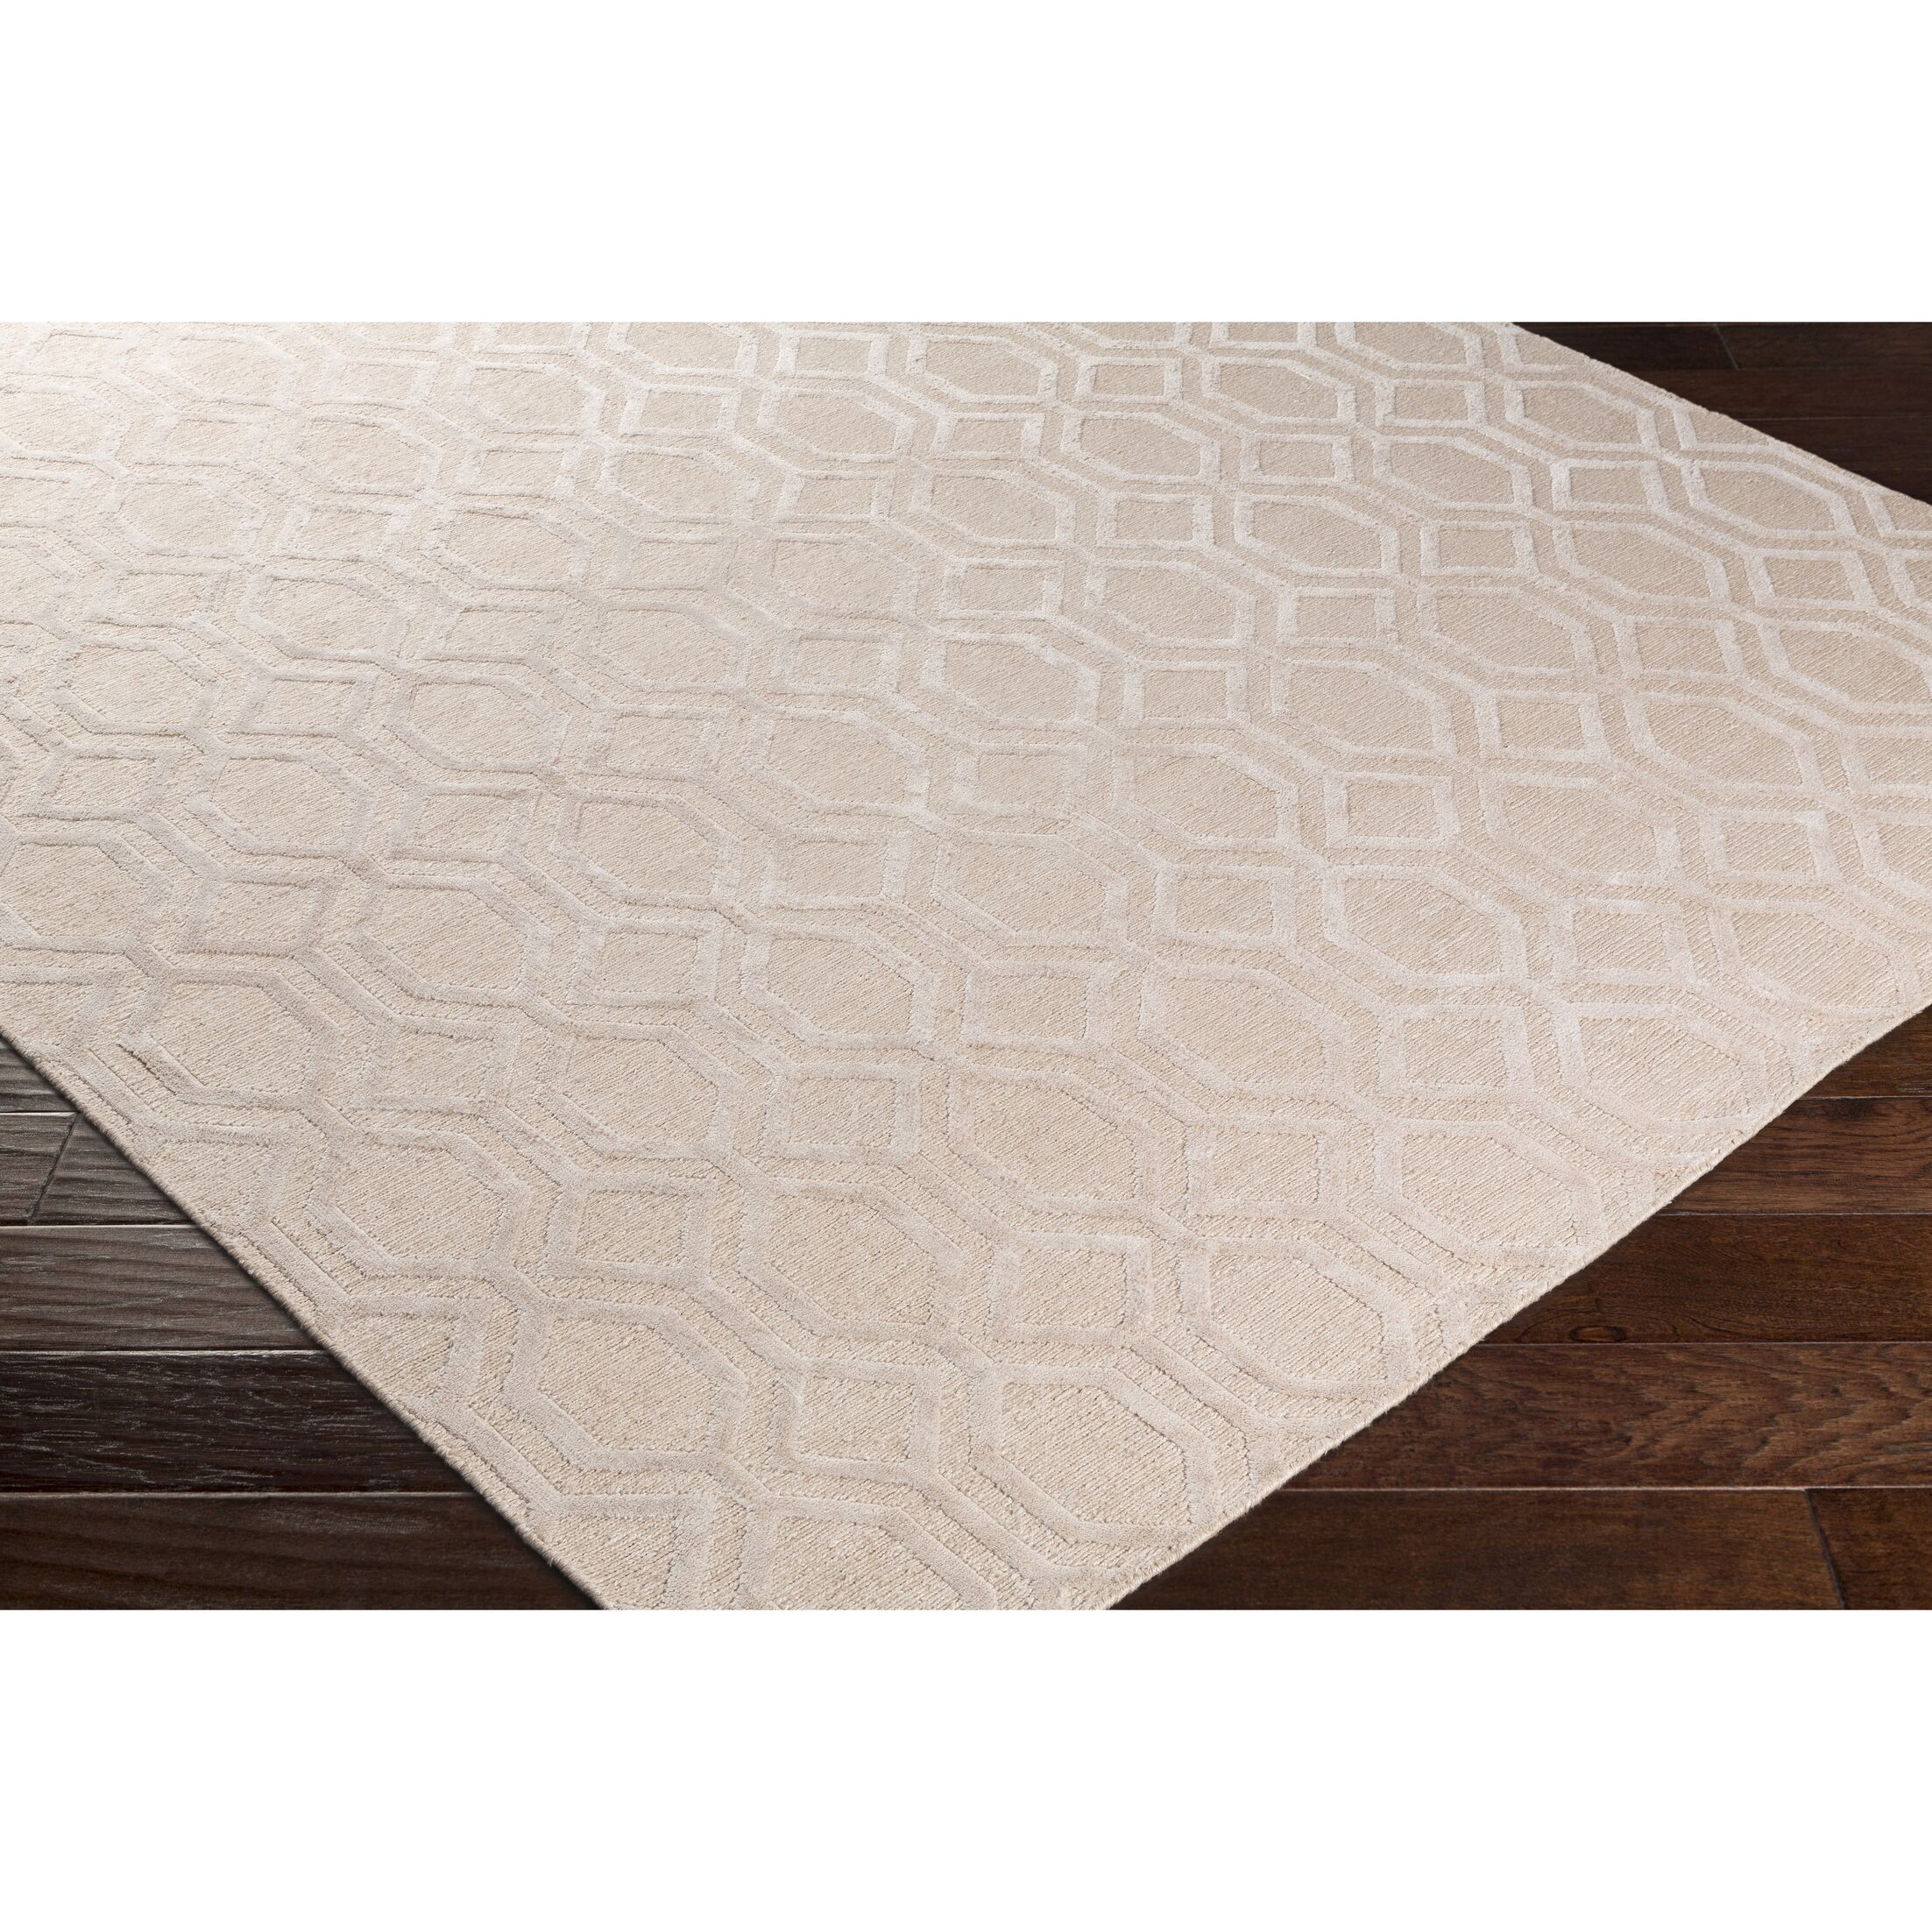 Barrville Hand-Knotted Pink Area Rug Rug Size: Rectangle 2' x 3'